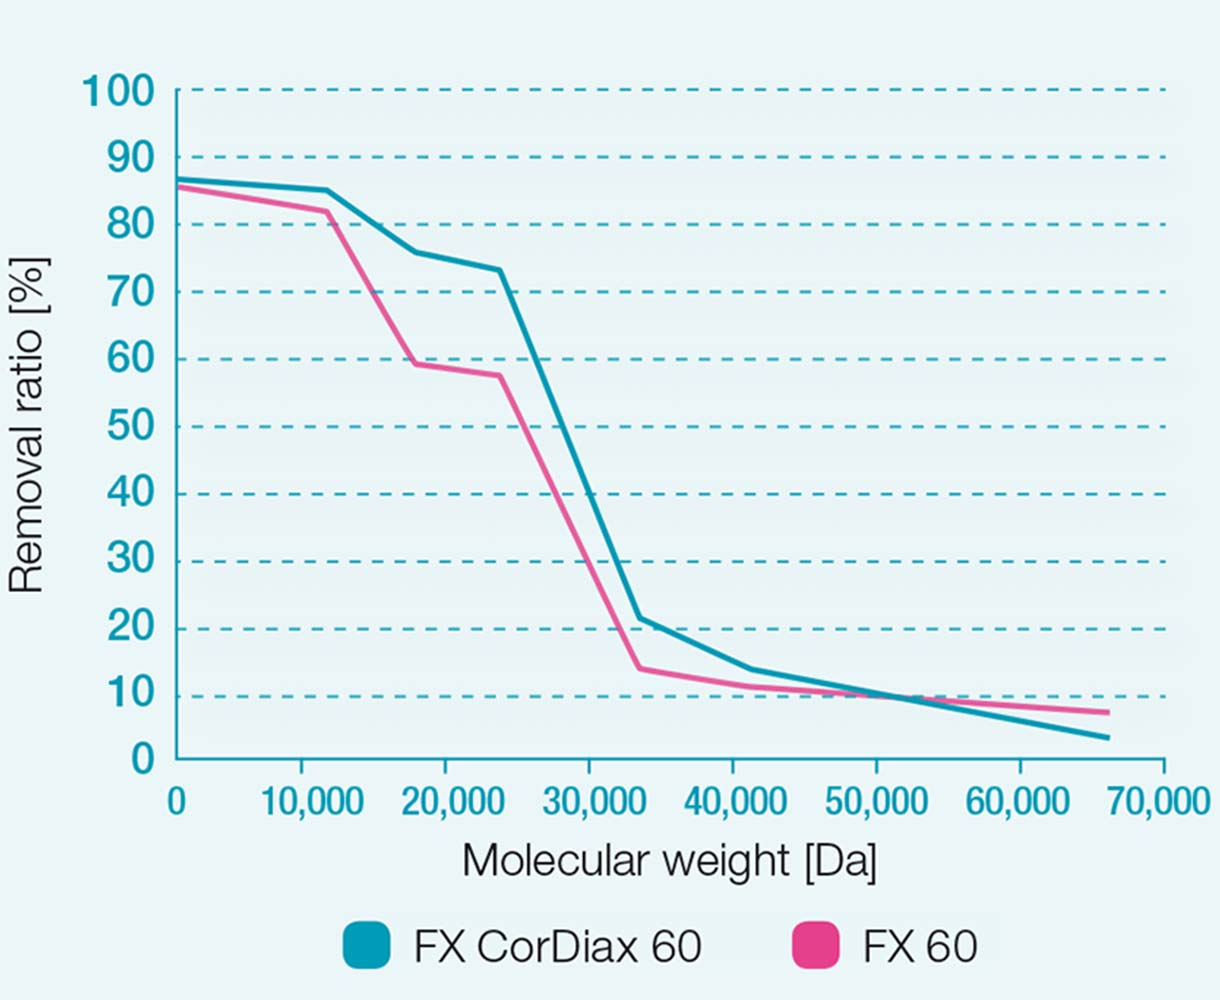 Removal ratios of FX 60 and FX CorDiax 60 dialyzers